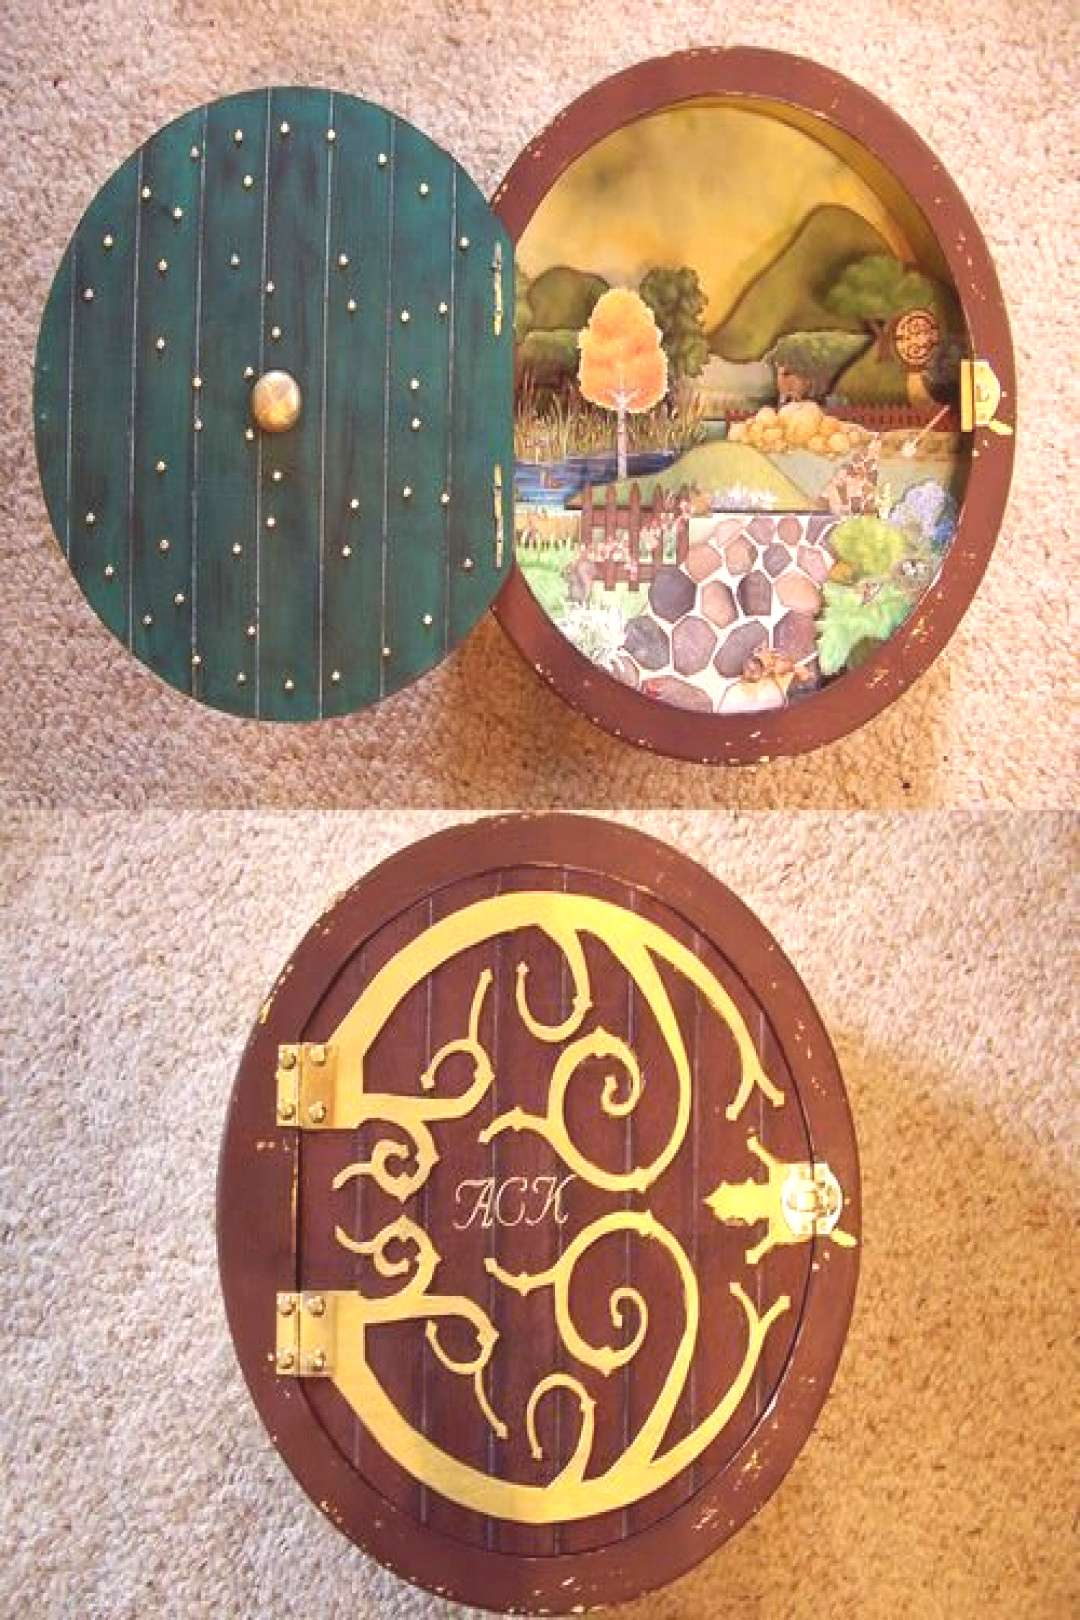 Cooler Geeks - A Hobbit Box. I want one!